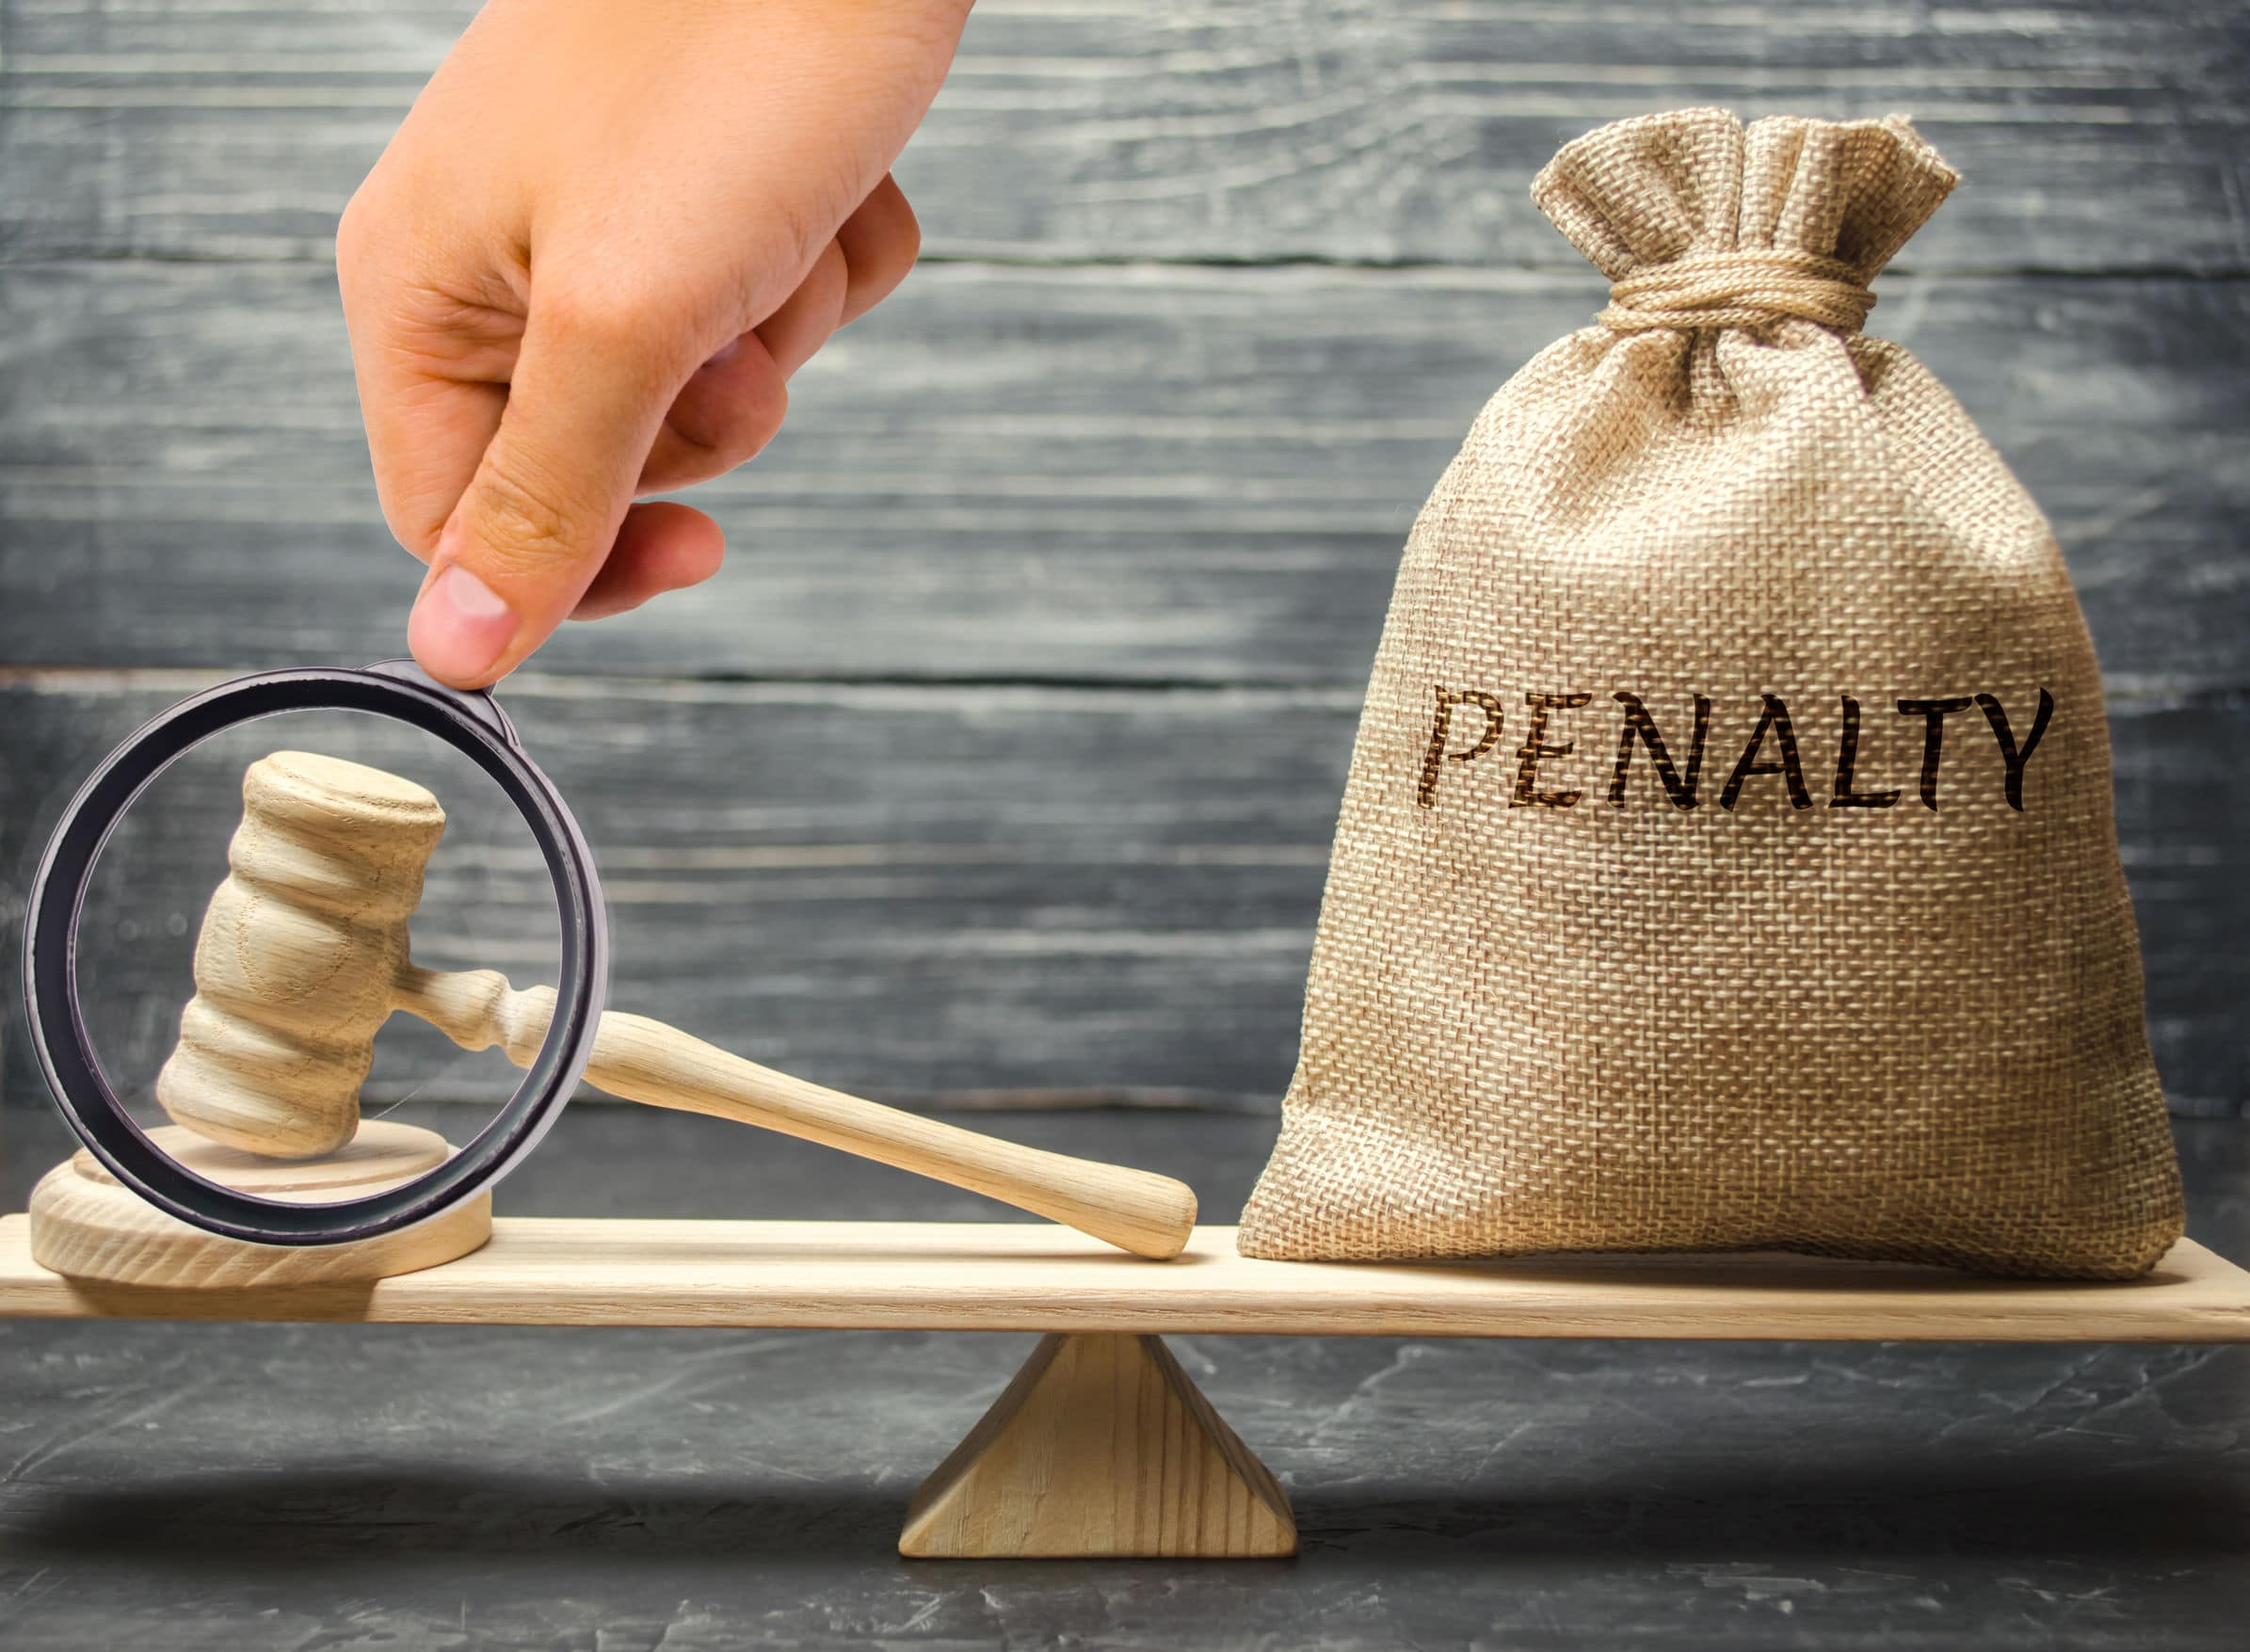 Penalties for Contempt of Court in Colorado